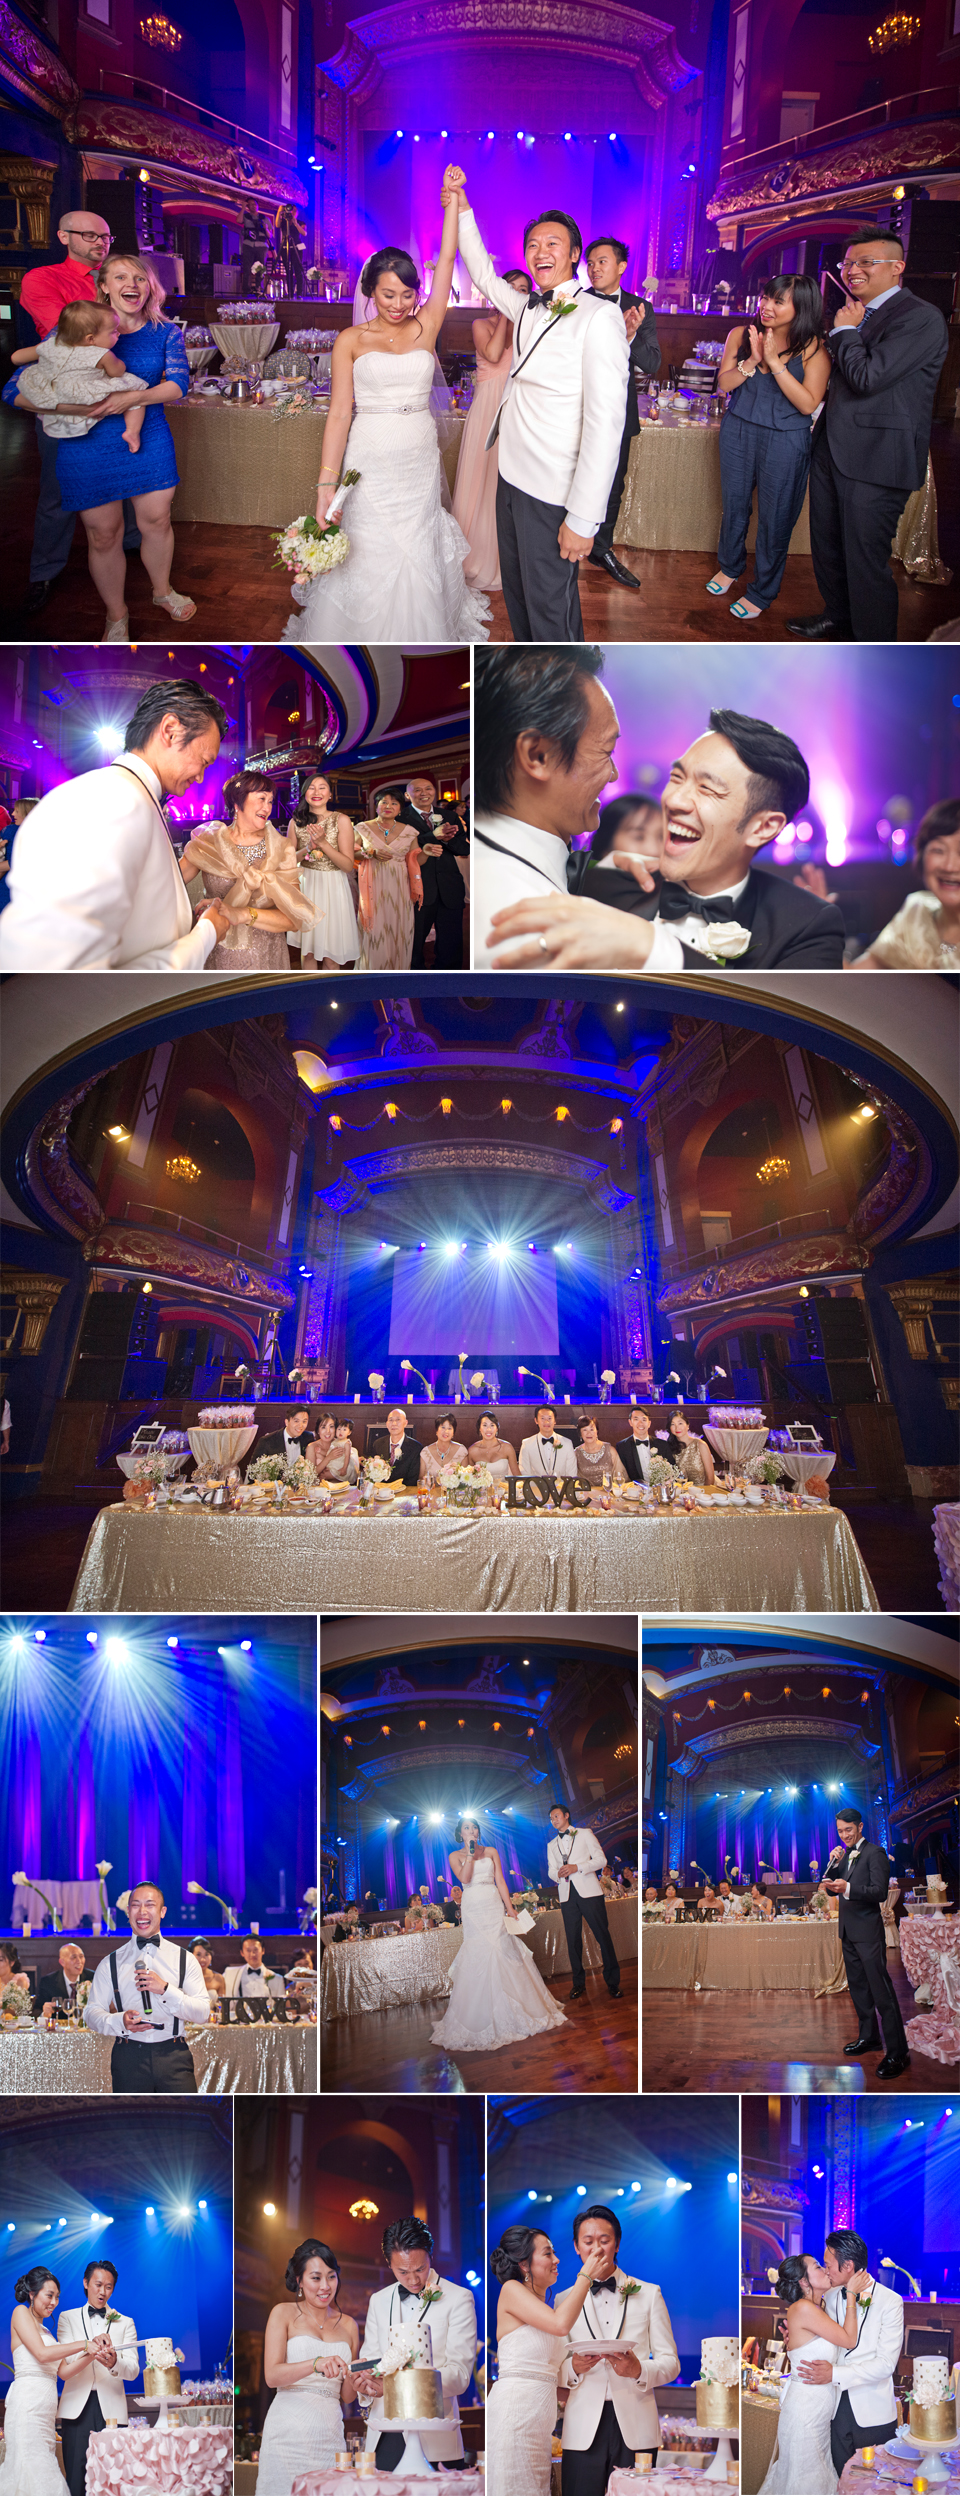 Wedding Photography Montreal | Reception | Rialto Theatre | Outremont | LMP Wedding Photography and Videography